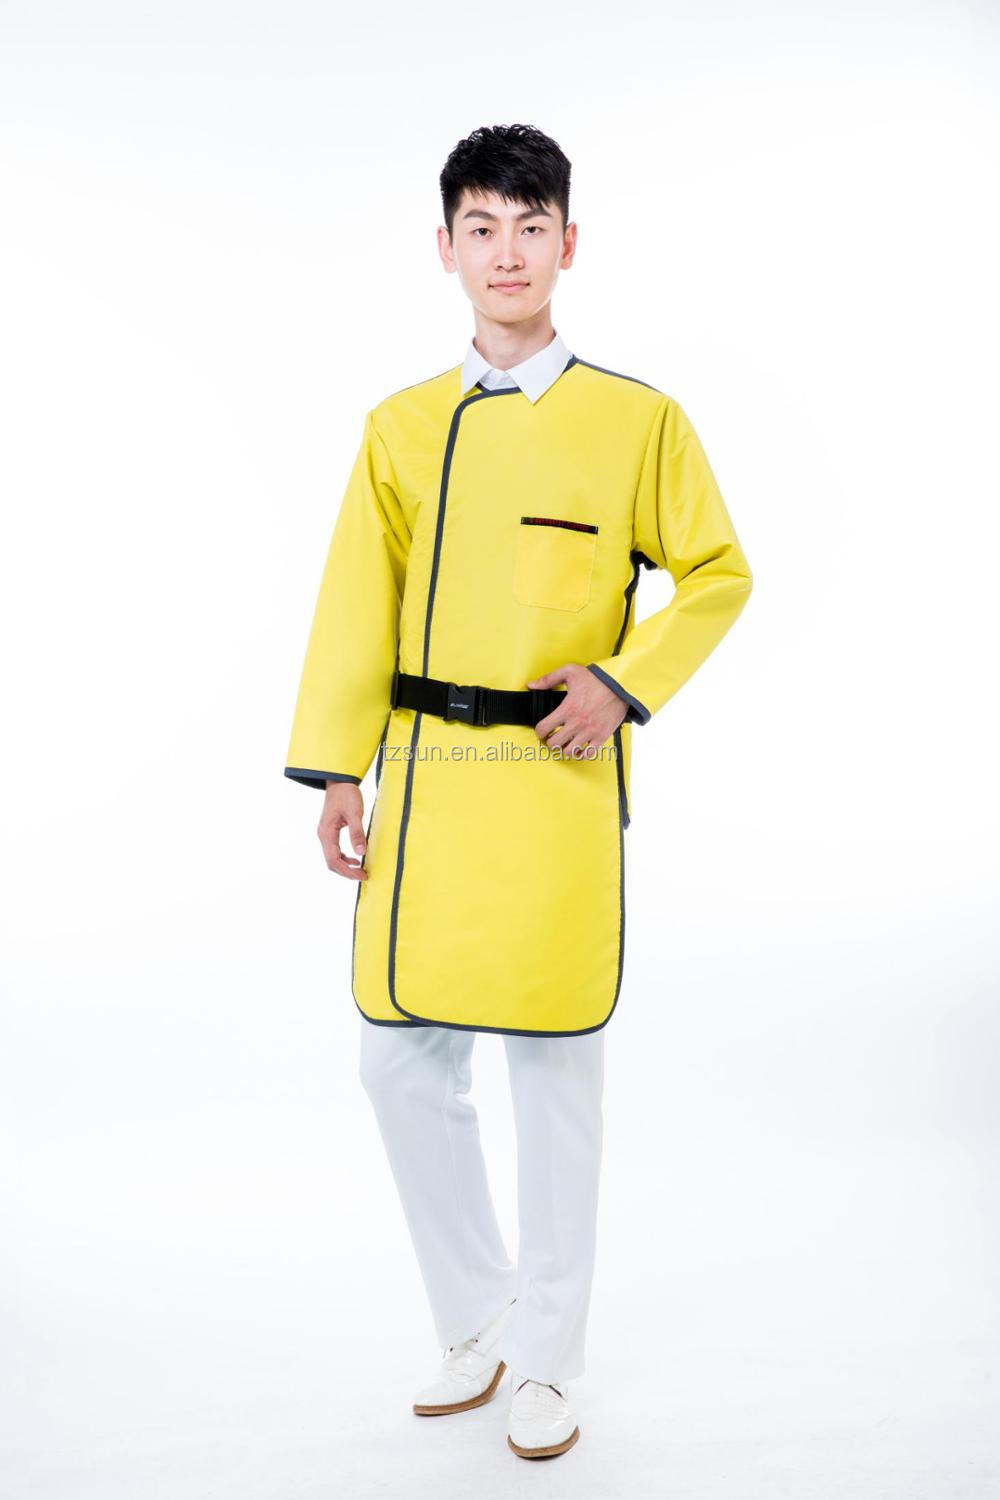 Medical Lead Apron/clinical X-ray Protection Medical Lead Gown ...